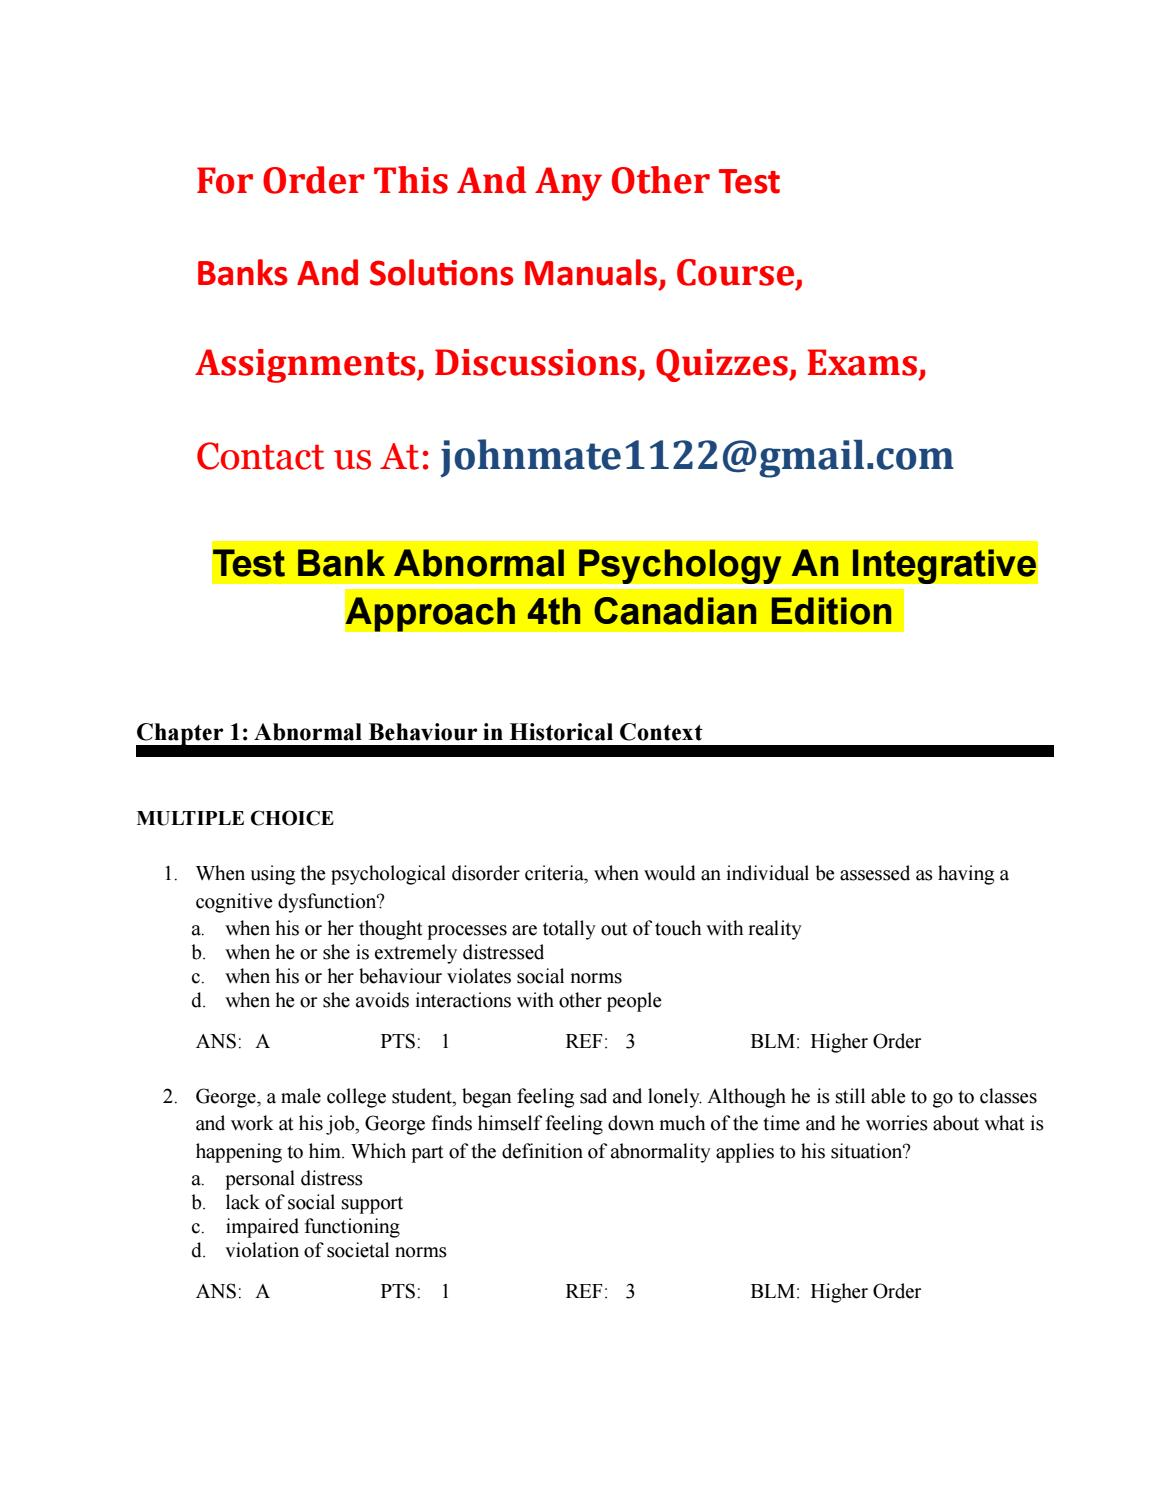 Test bank abnormal psychology an integrative approach 4th canadian ...